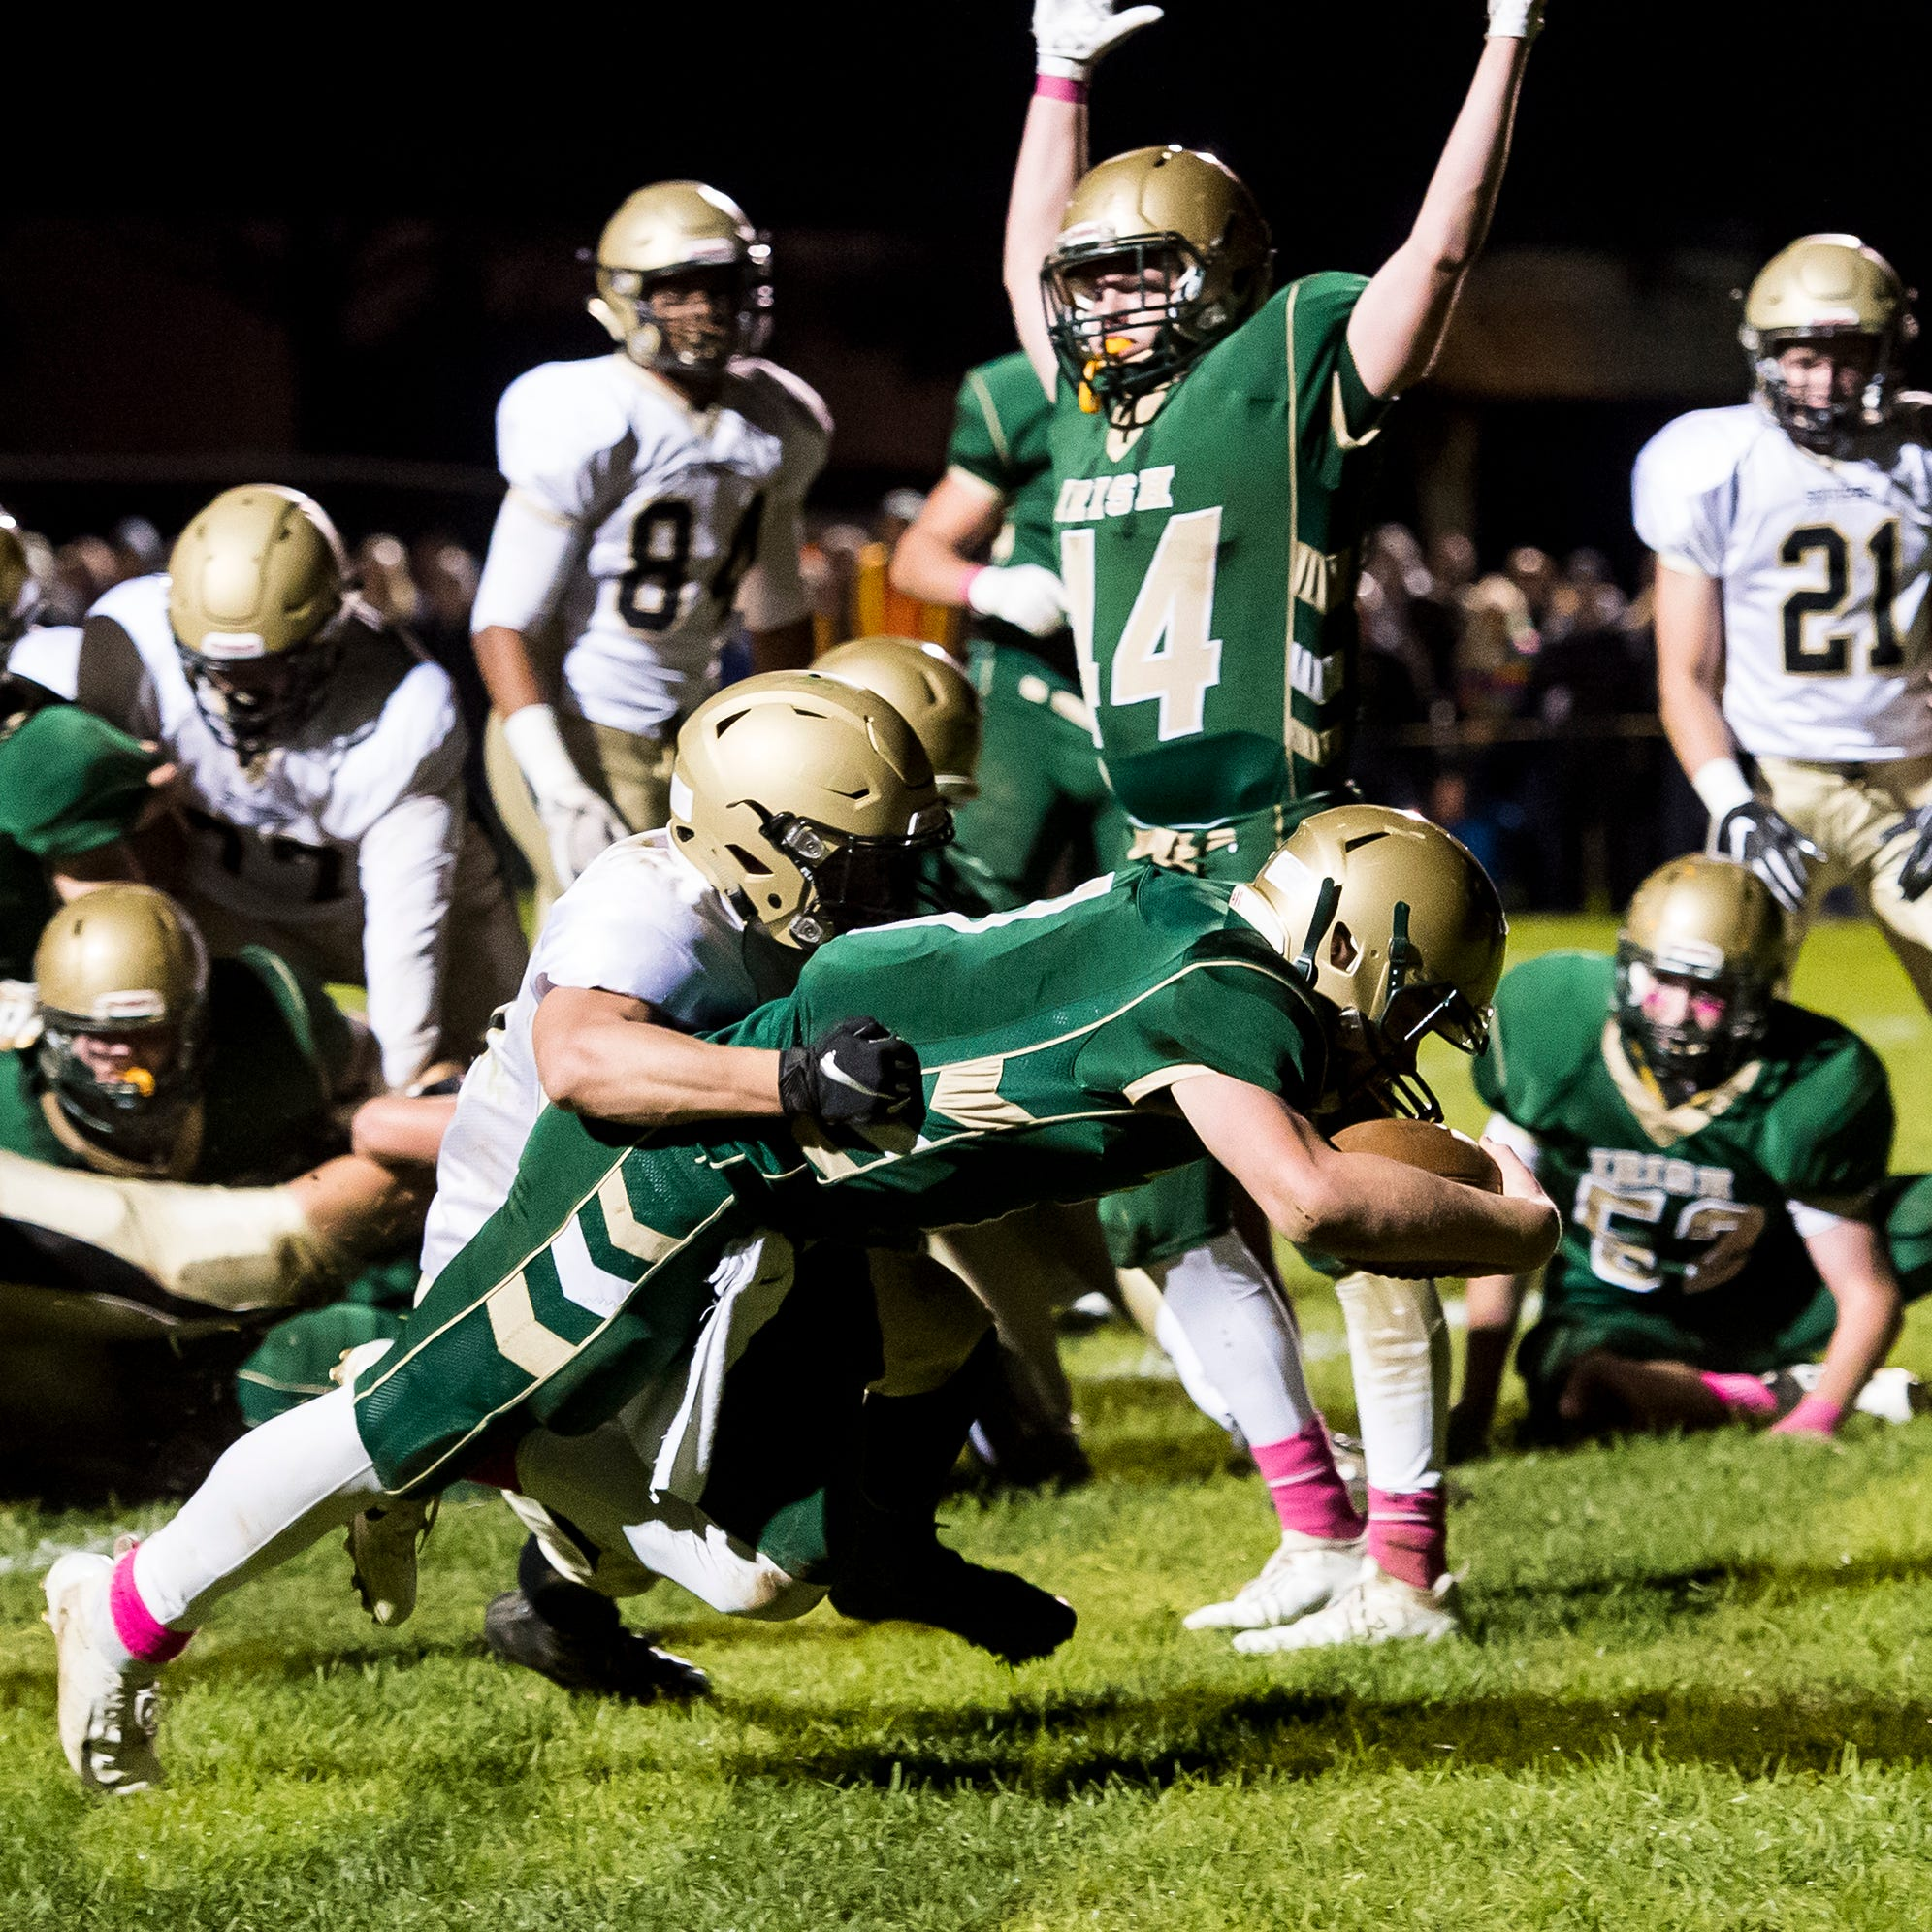 York Catholic crushes Delone to three-peat as Division III champions